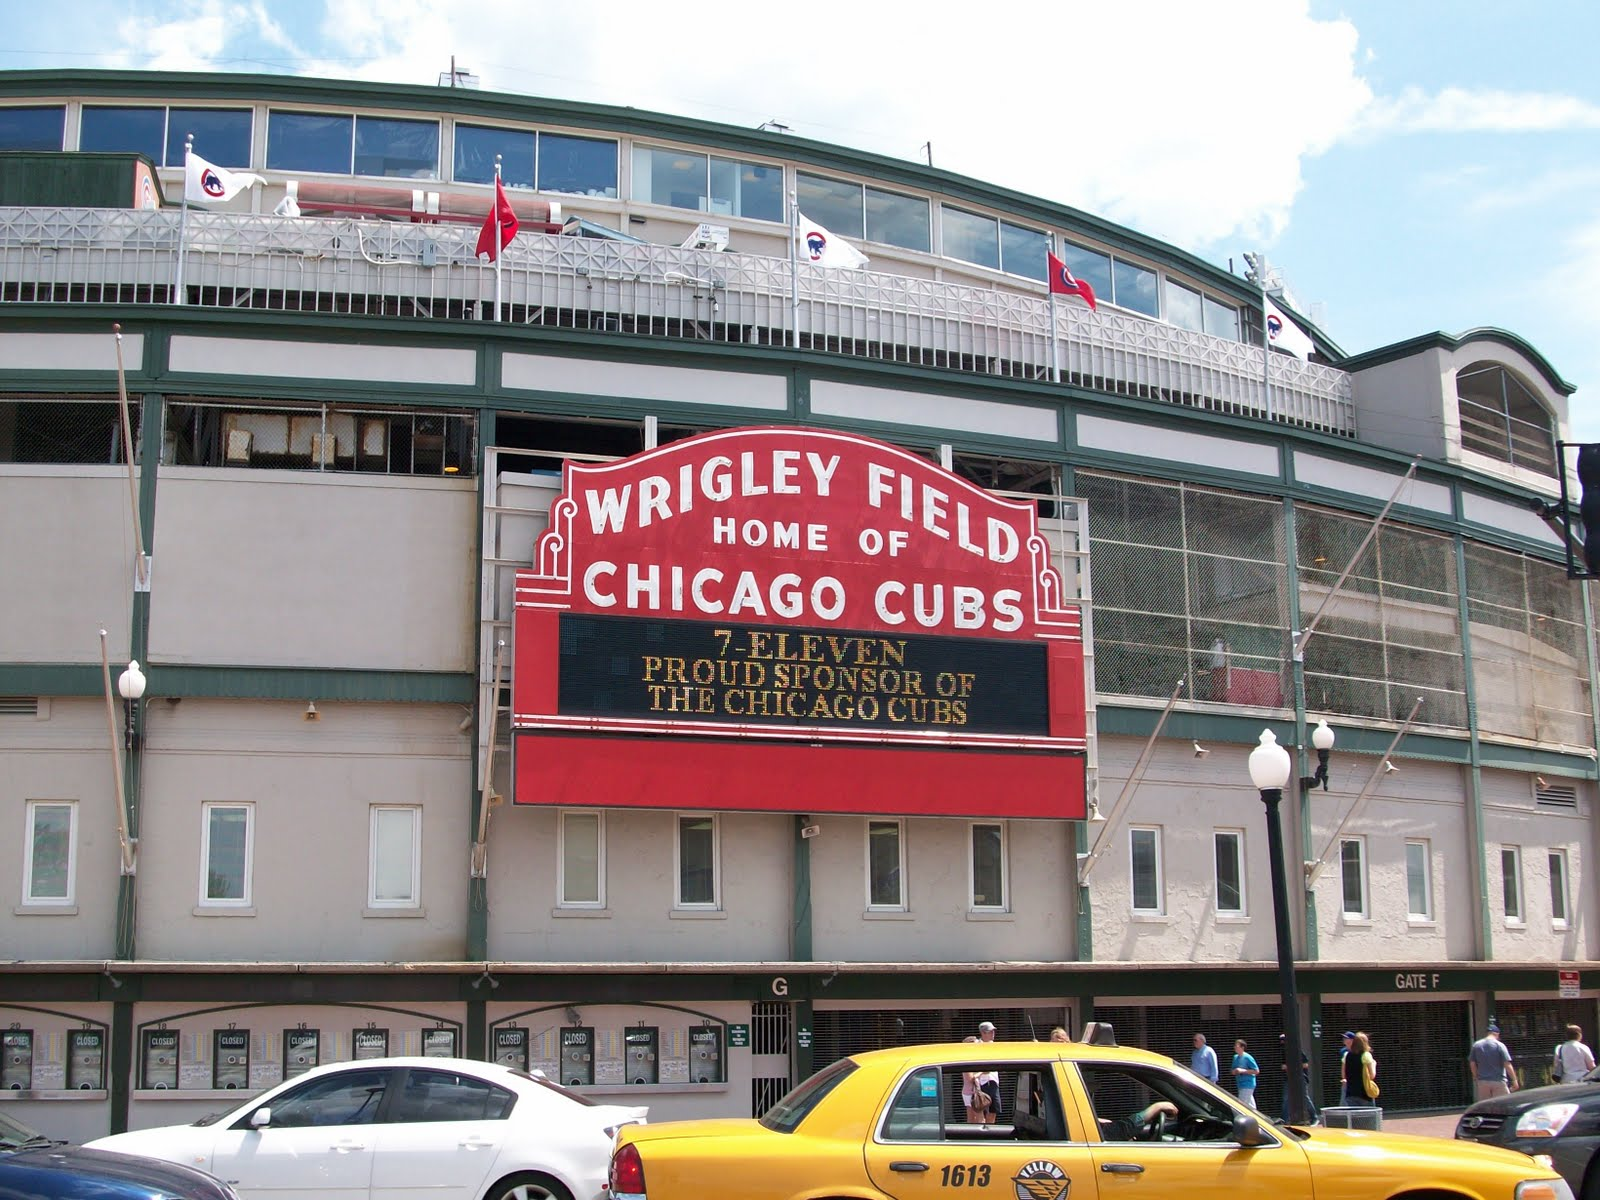 wrigley report Wrigley report 3,629 likes 1,575 talking about this covering wrigley renovations, team updates, and anything else pertaining to the chicago cubs.